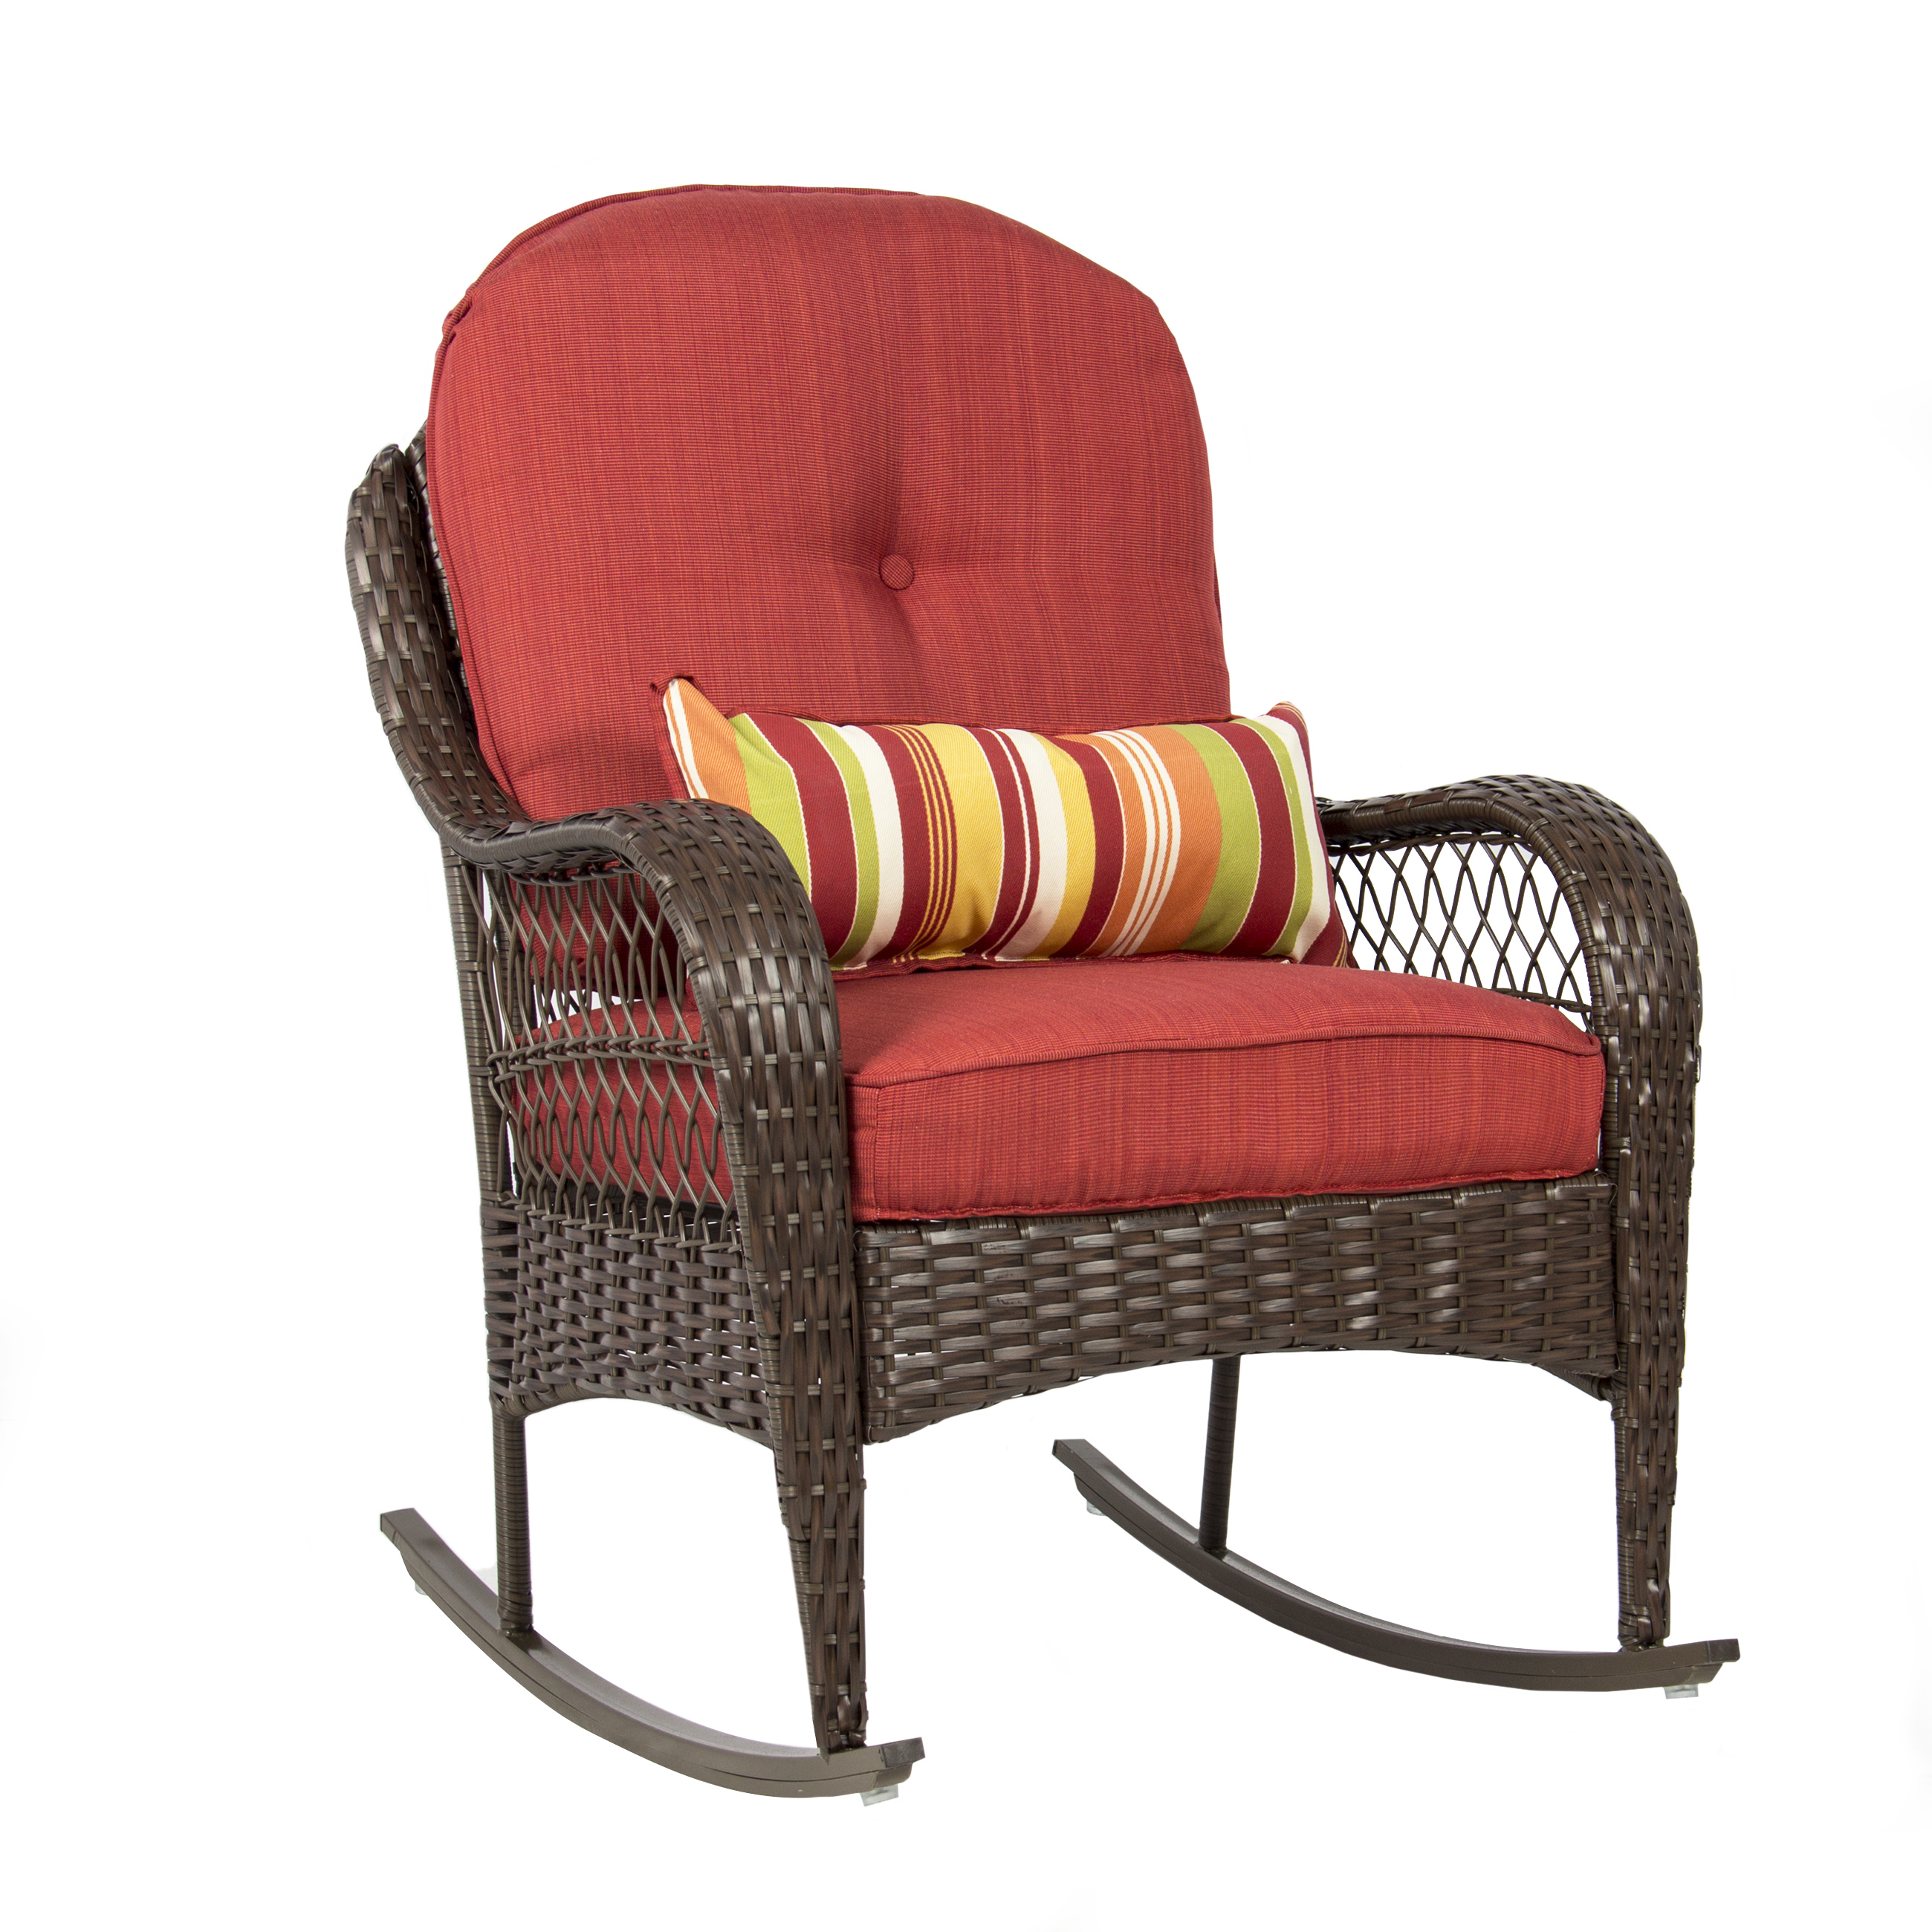 Patio Rocker Chairs Wicker Rocking Chair Patio Porch Deck Furniture All Weather Proof